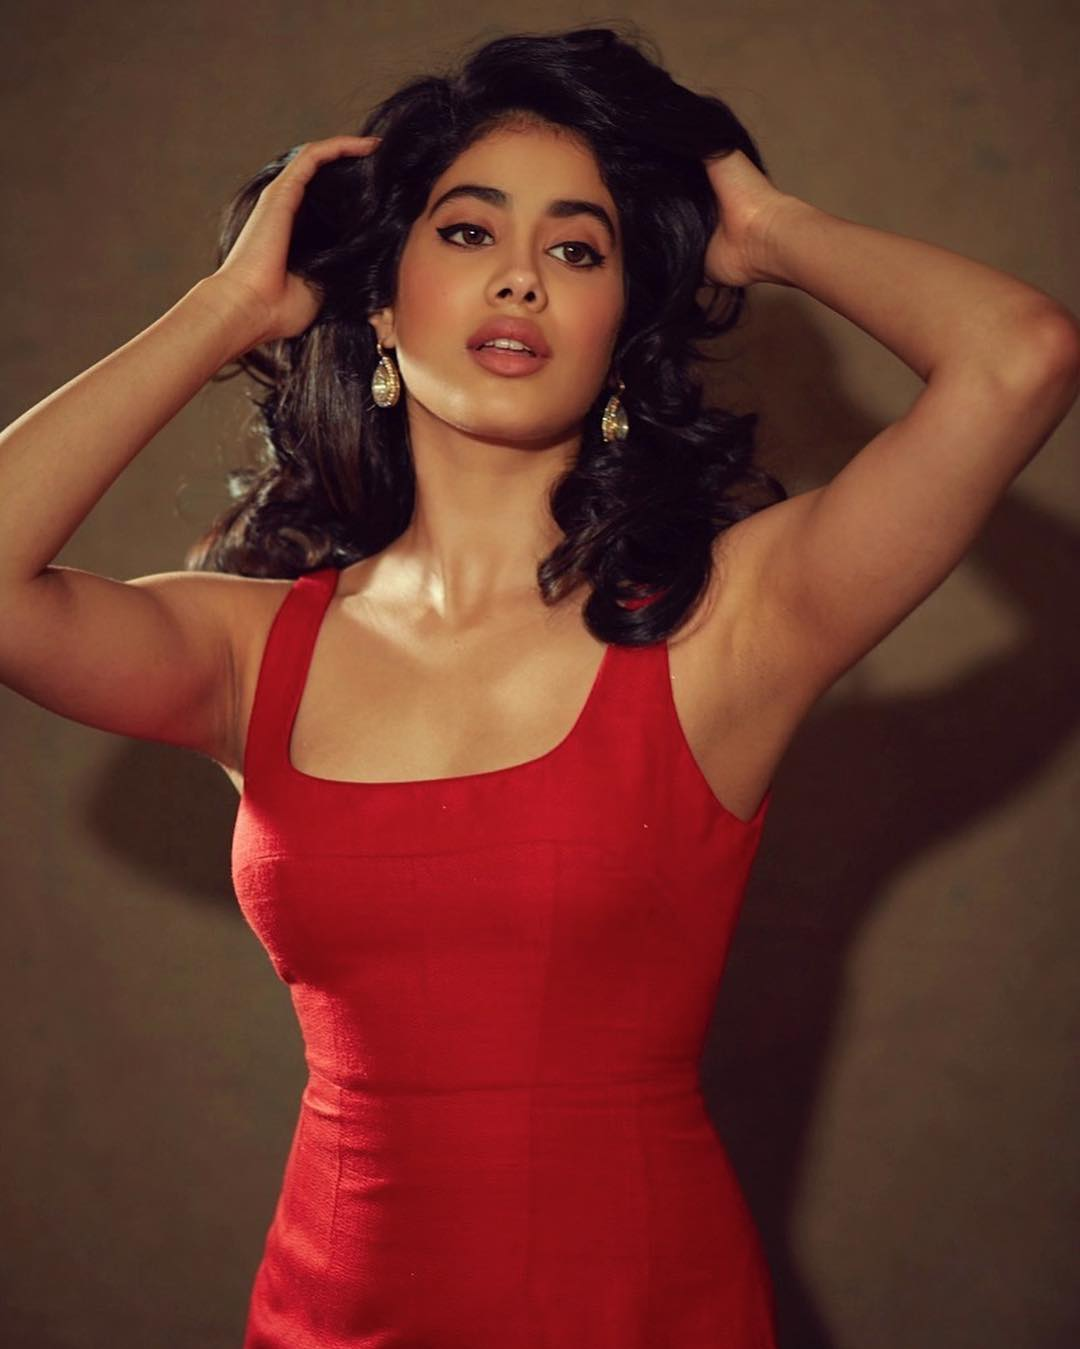 Fans of Janhvi Kapoor flooded the comments section on her latest Instagram post